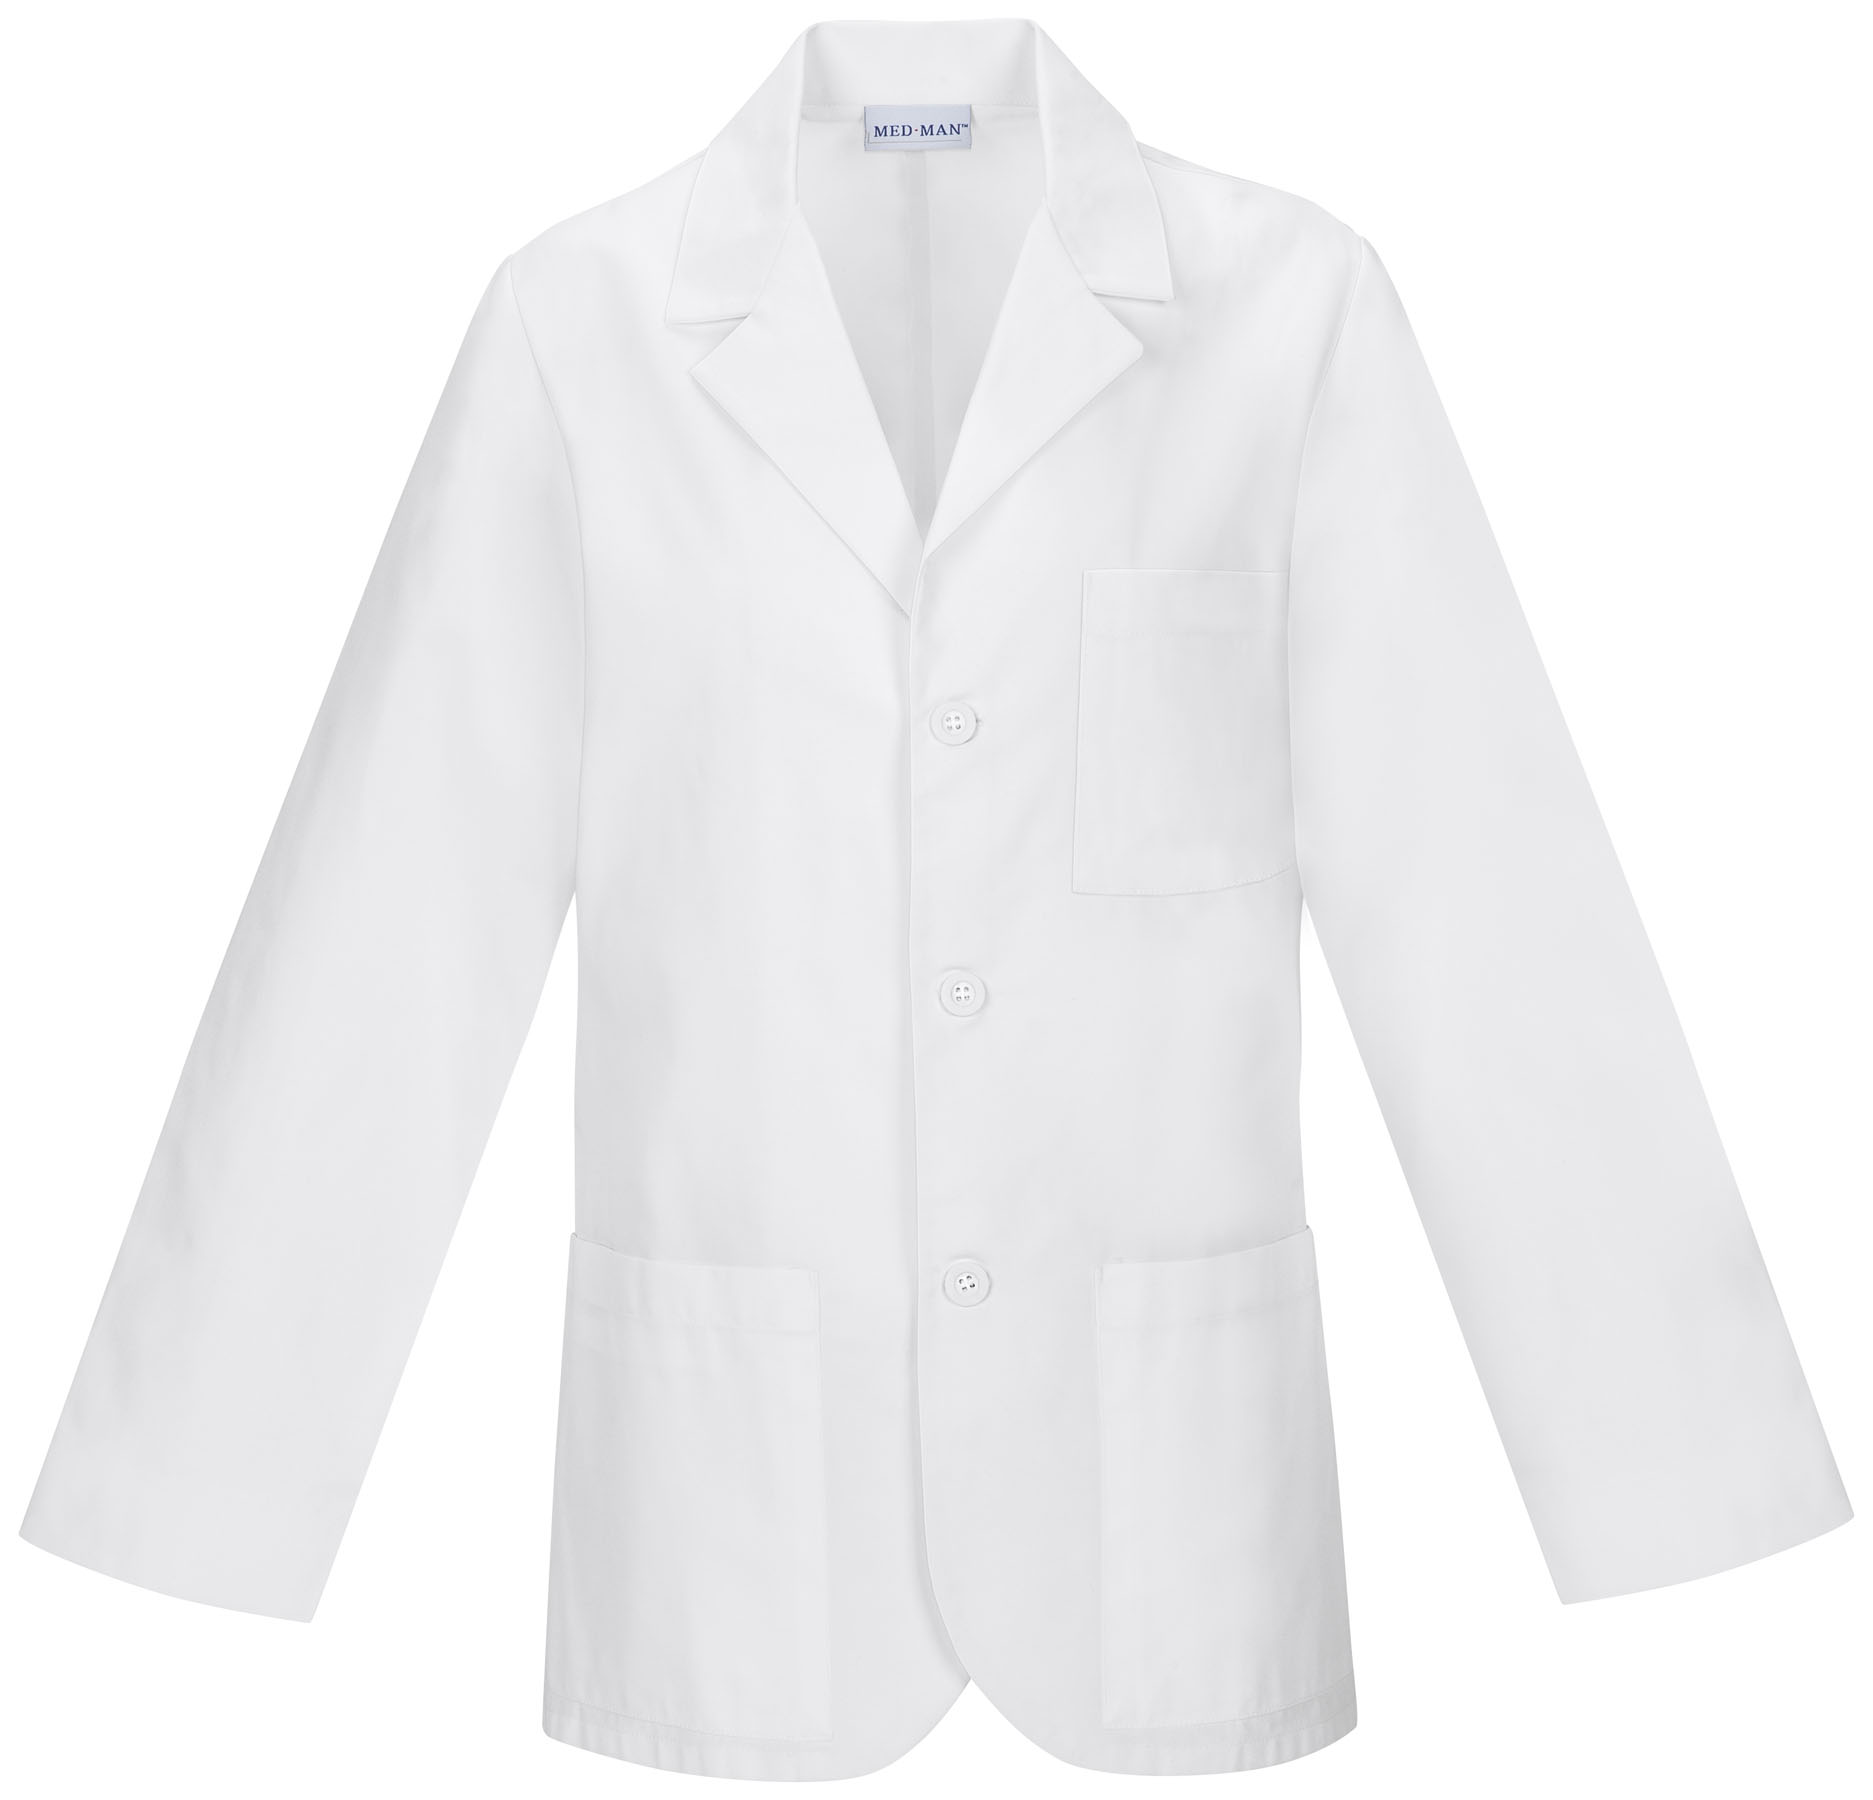 Med-Man 31 Inch Men's Consultation Lab Coat 1389A